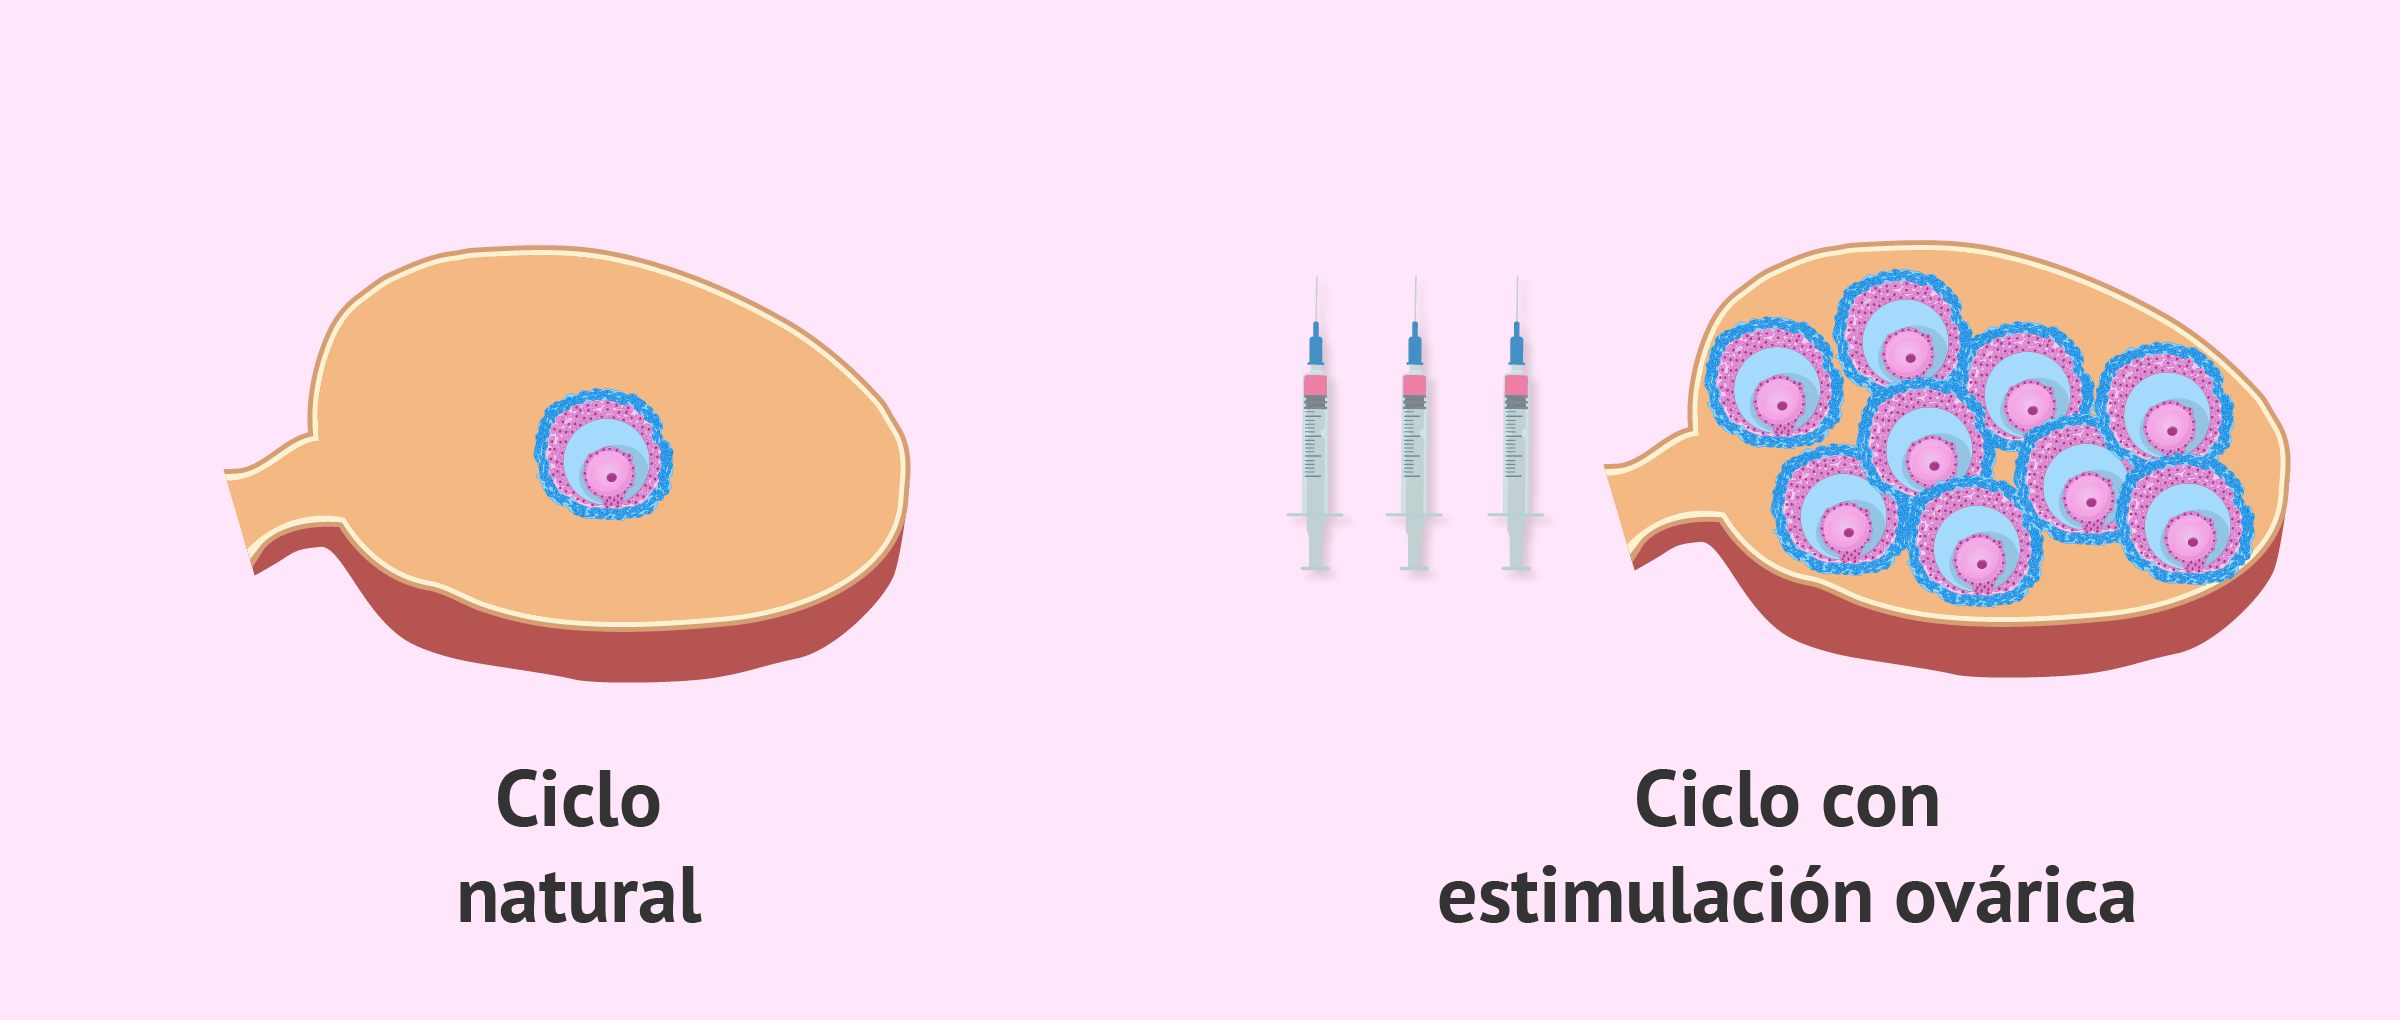 Ciclo normal vs. ciclo estimulado